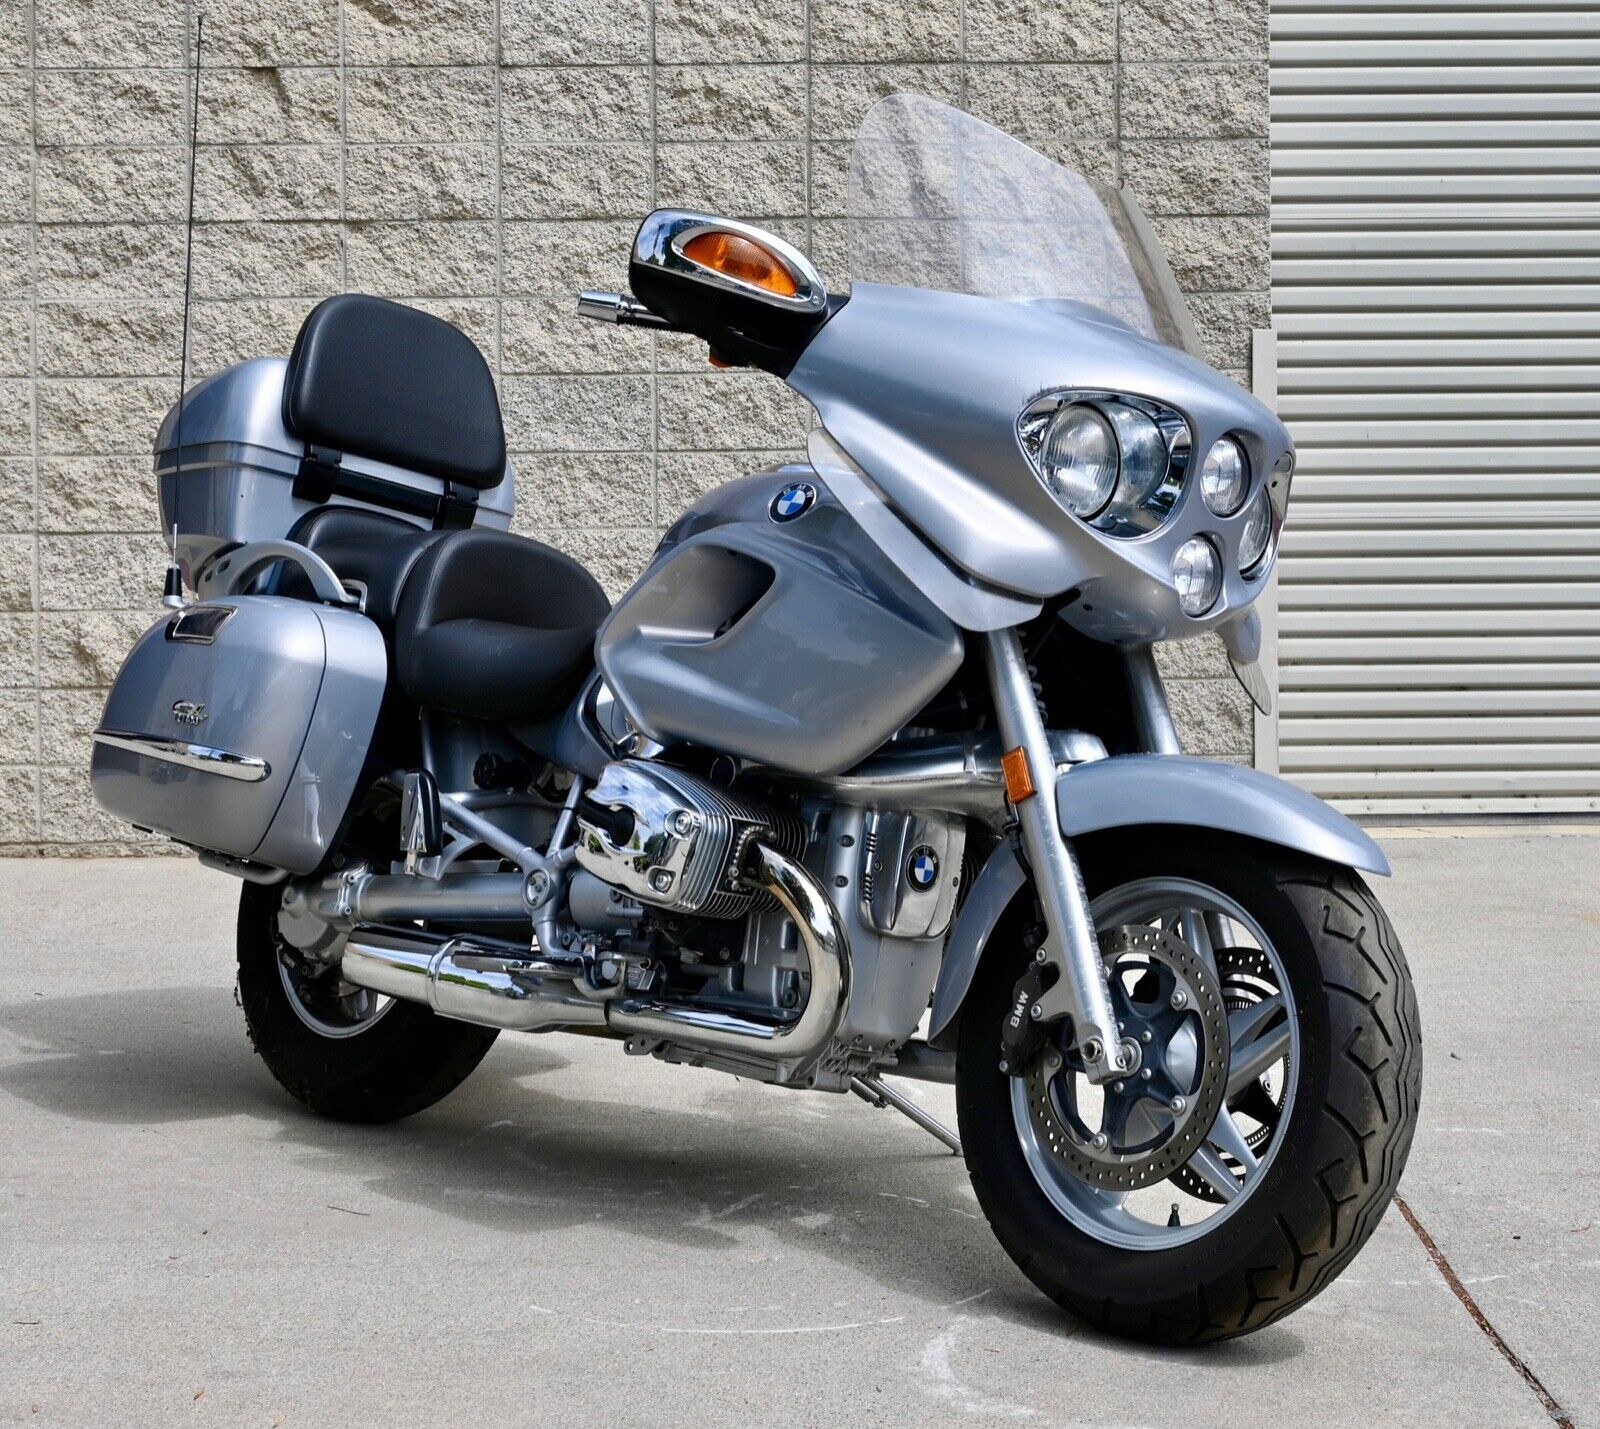 2003 BMW 1170cc R1200CL, ABS, 3,100 miles from new, heated grips, radio/6CD!